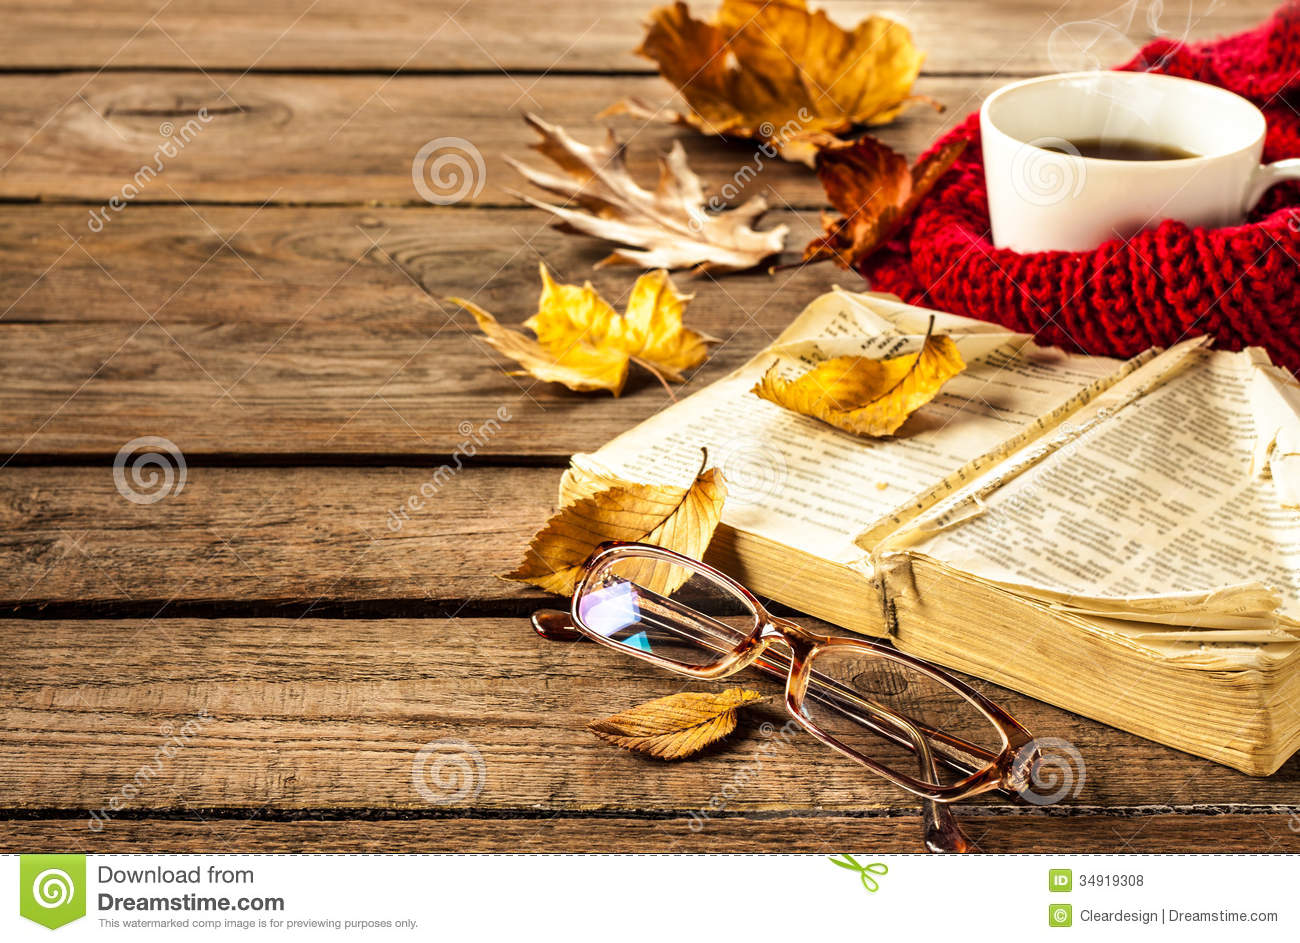 Hot coffee, book, glasses and autumn leaves on wood background